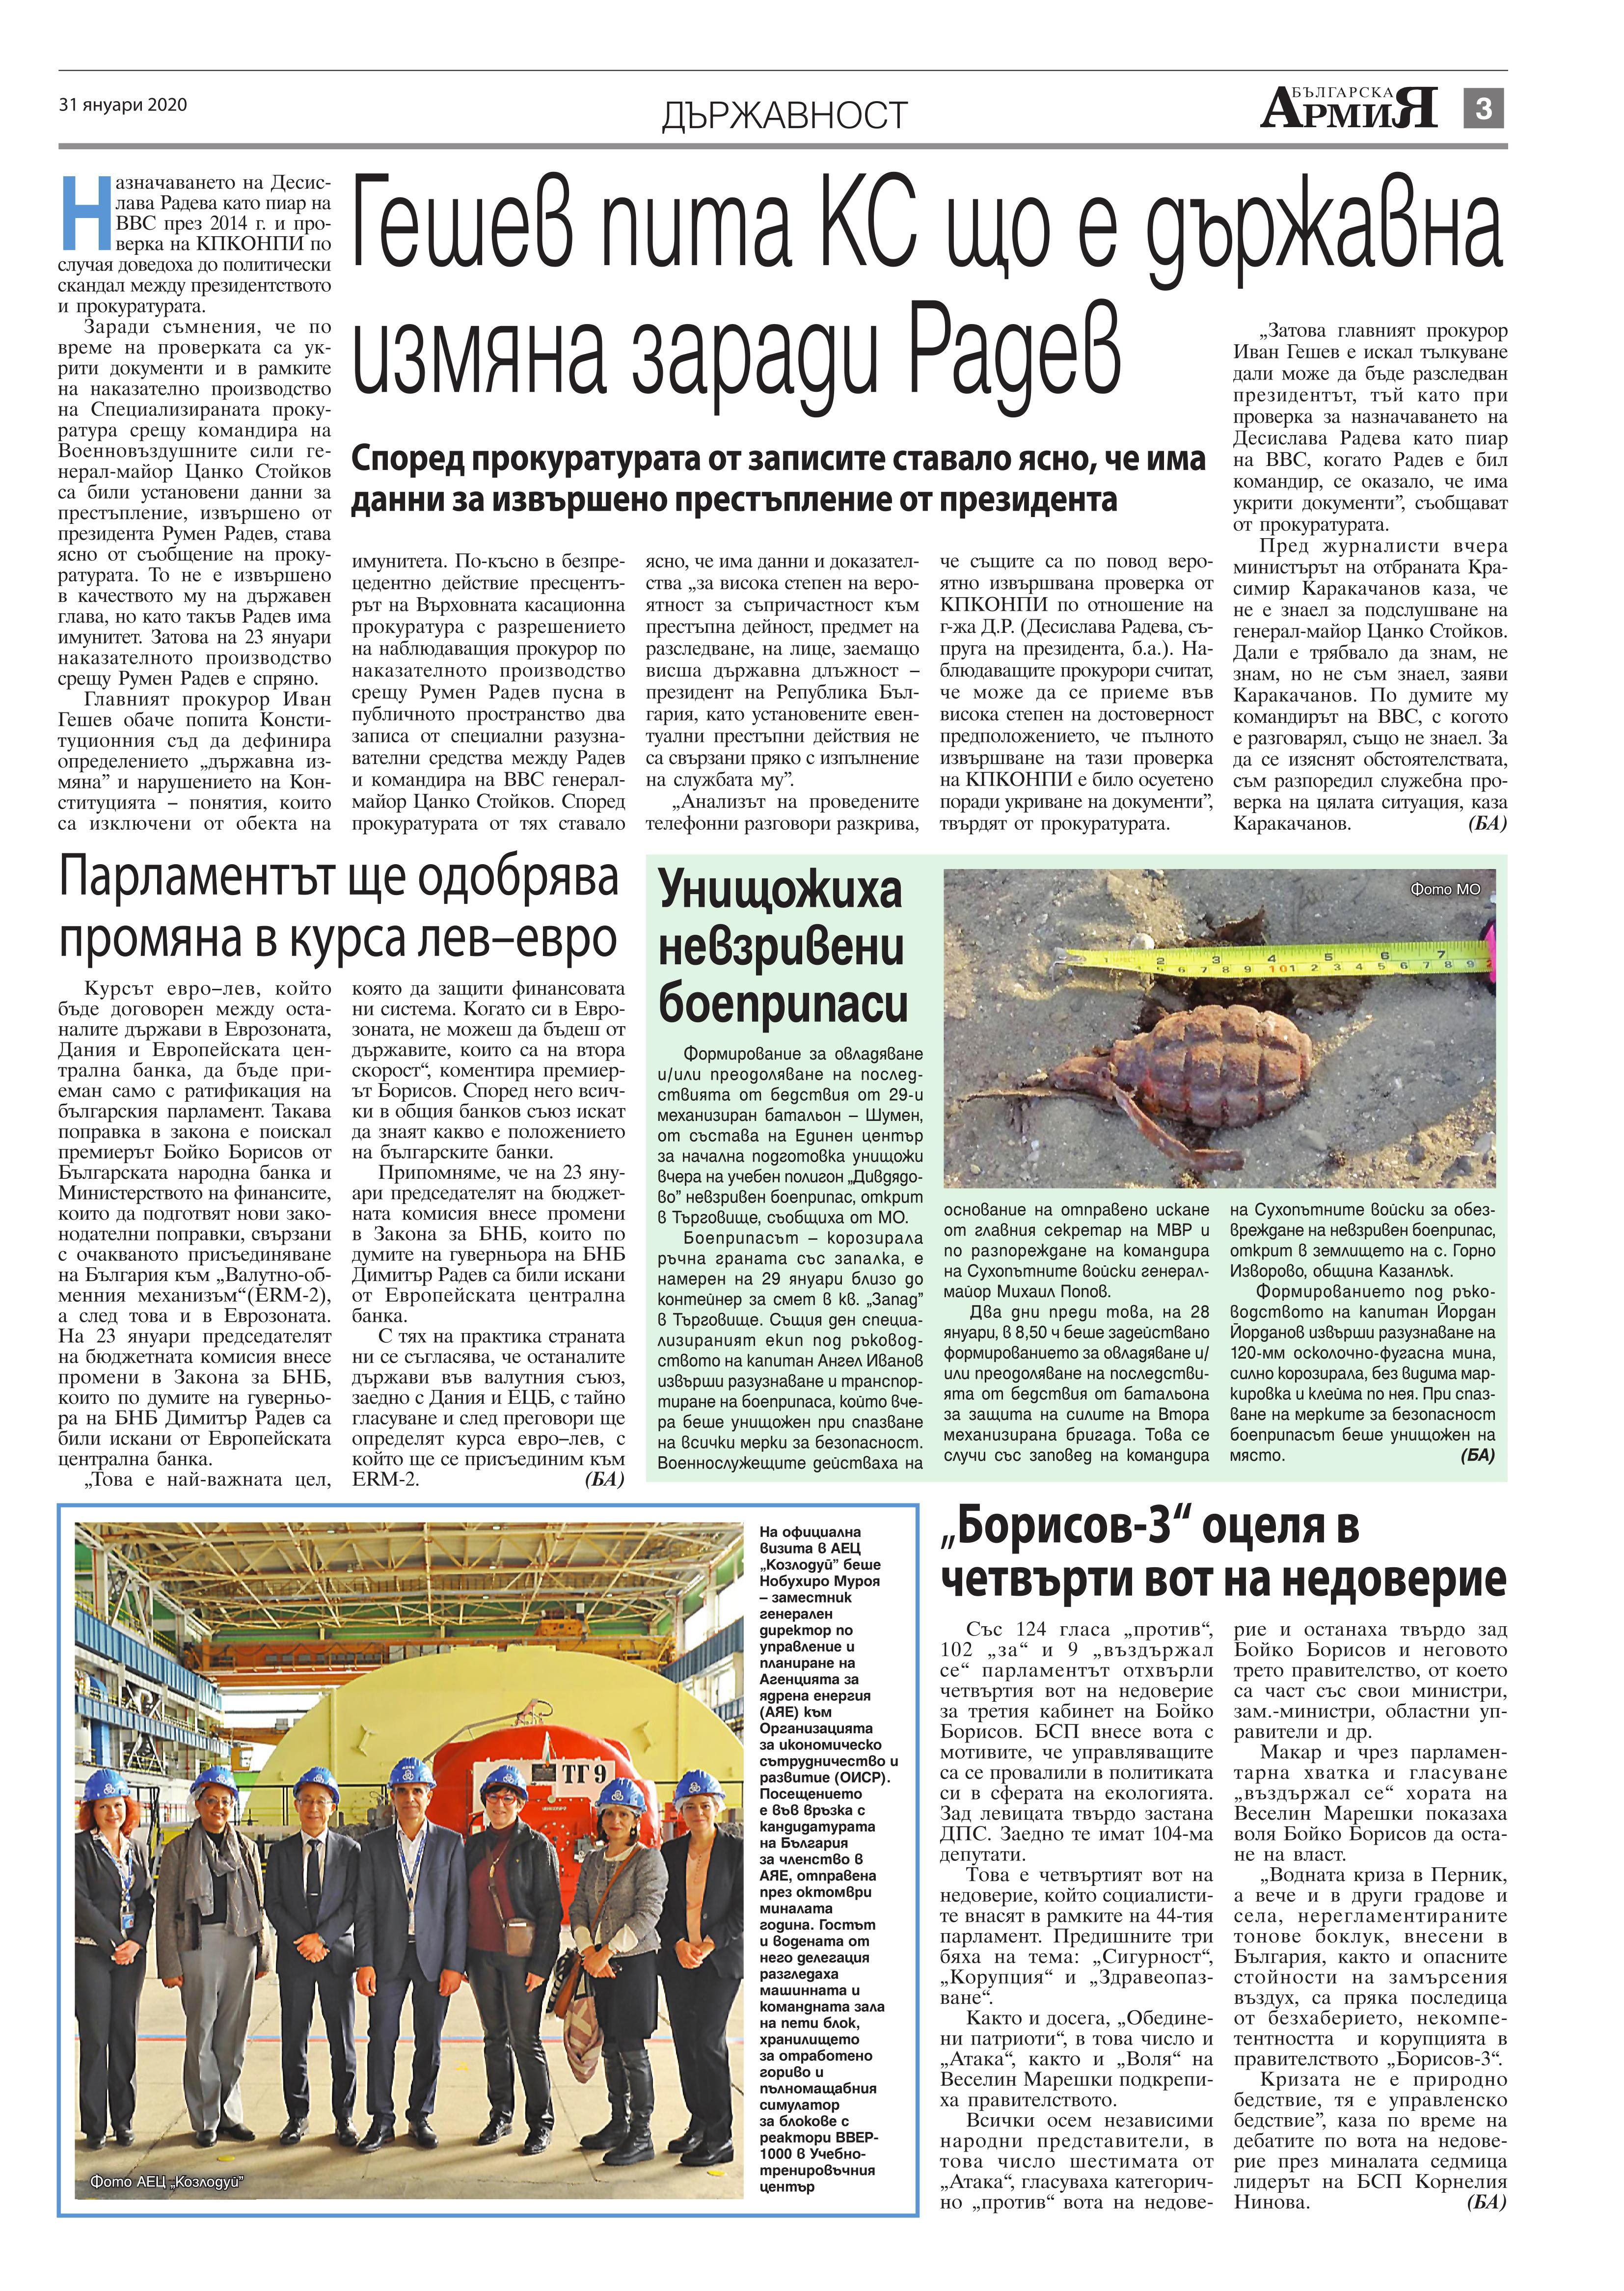 https://www.armymedia.bg/wp-content/uploads/2015/06/03.page1_-122.jpg